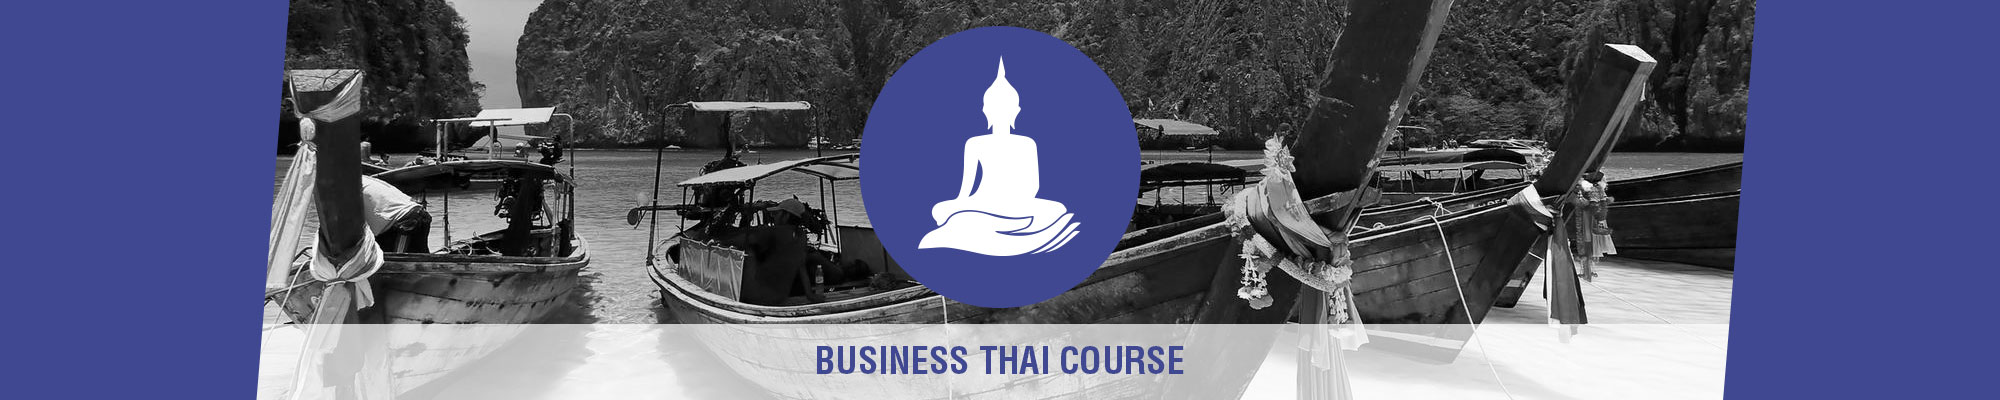 Anglokom Corporate Language Training Bangkok - Business Thai Banner Image